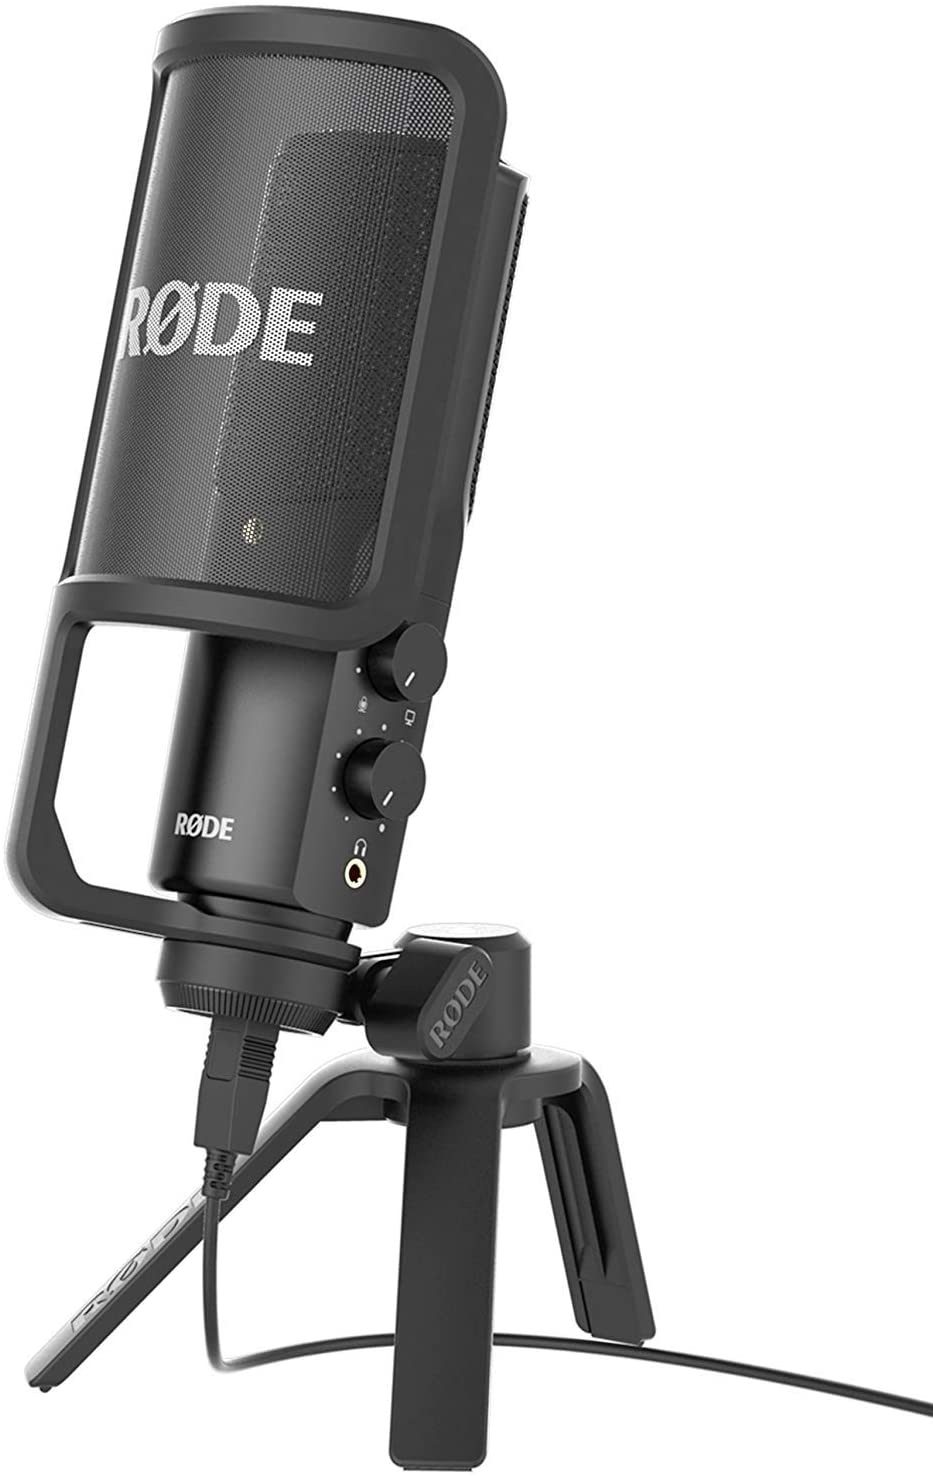 Rode NT-USB Cardioid Condenser Microphone